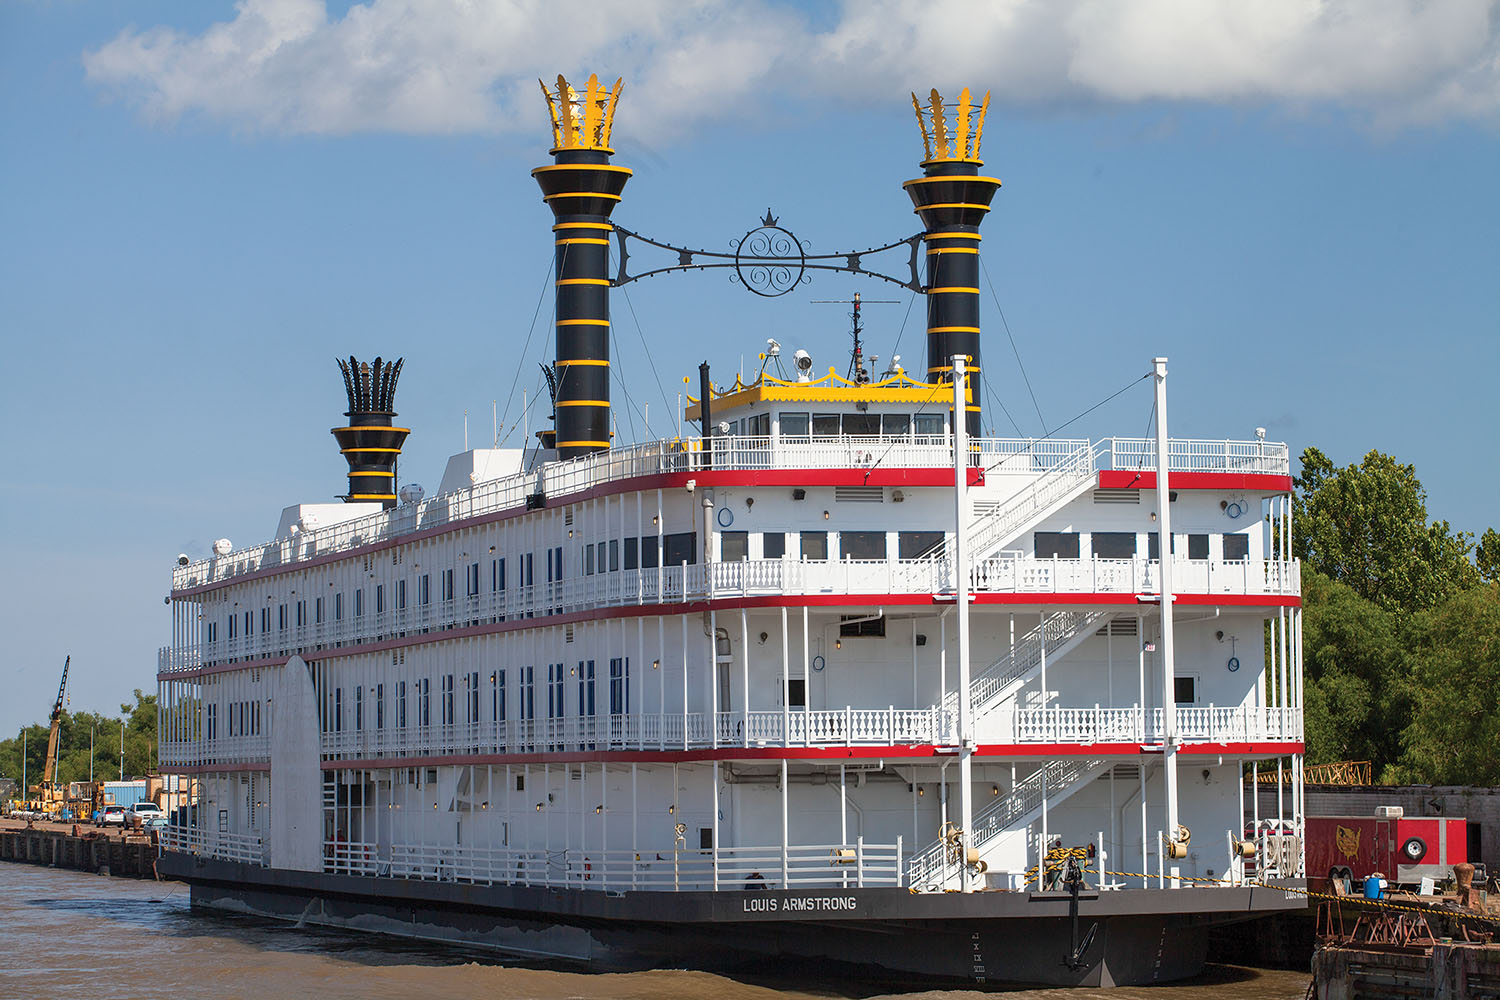 The Louis Armstrong, a jazz-themed excursion boat with a 2,500-passenger capacity, will begin cruising in New Orleans in November. (Photo by Frank McCormack)